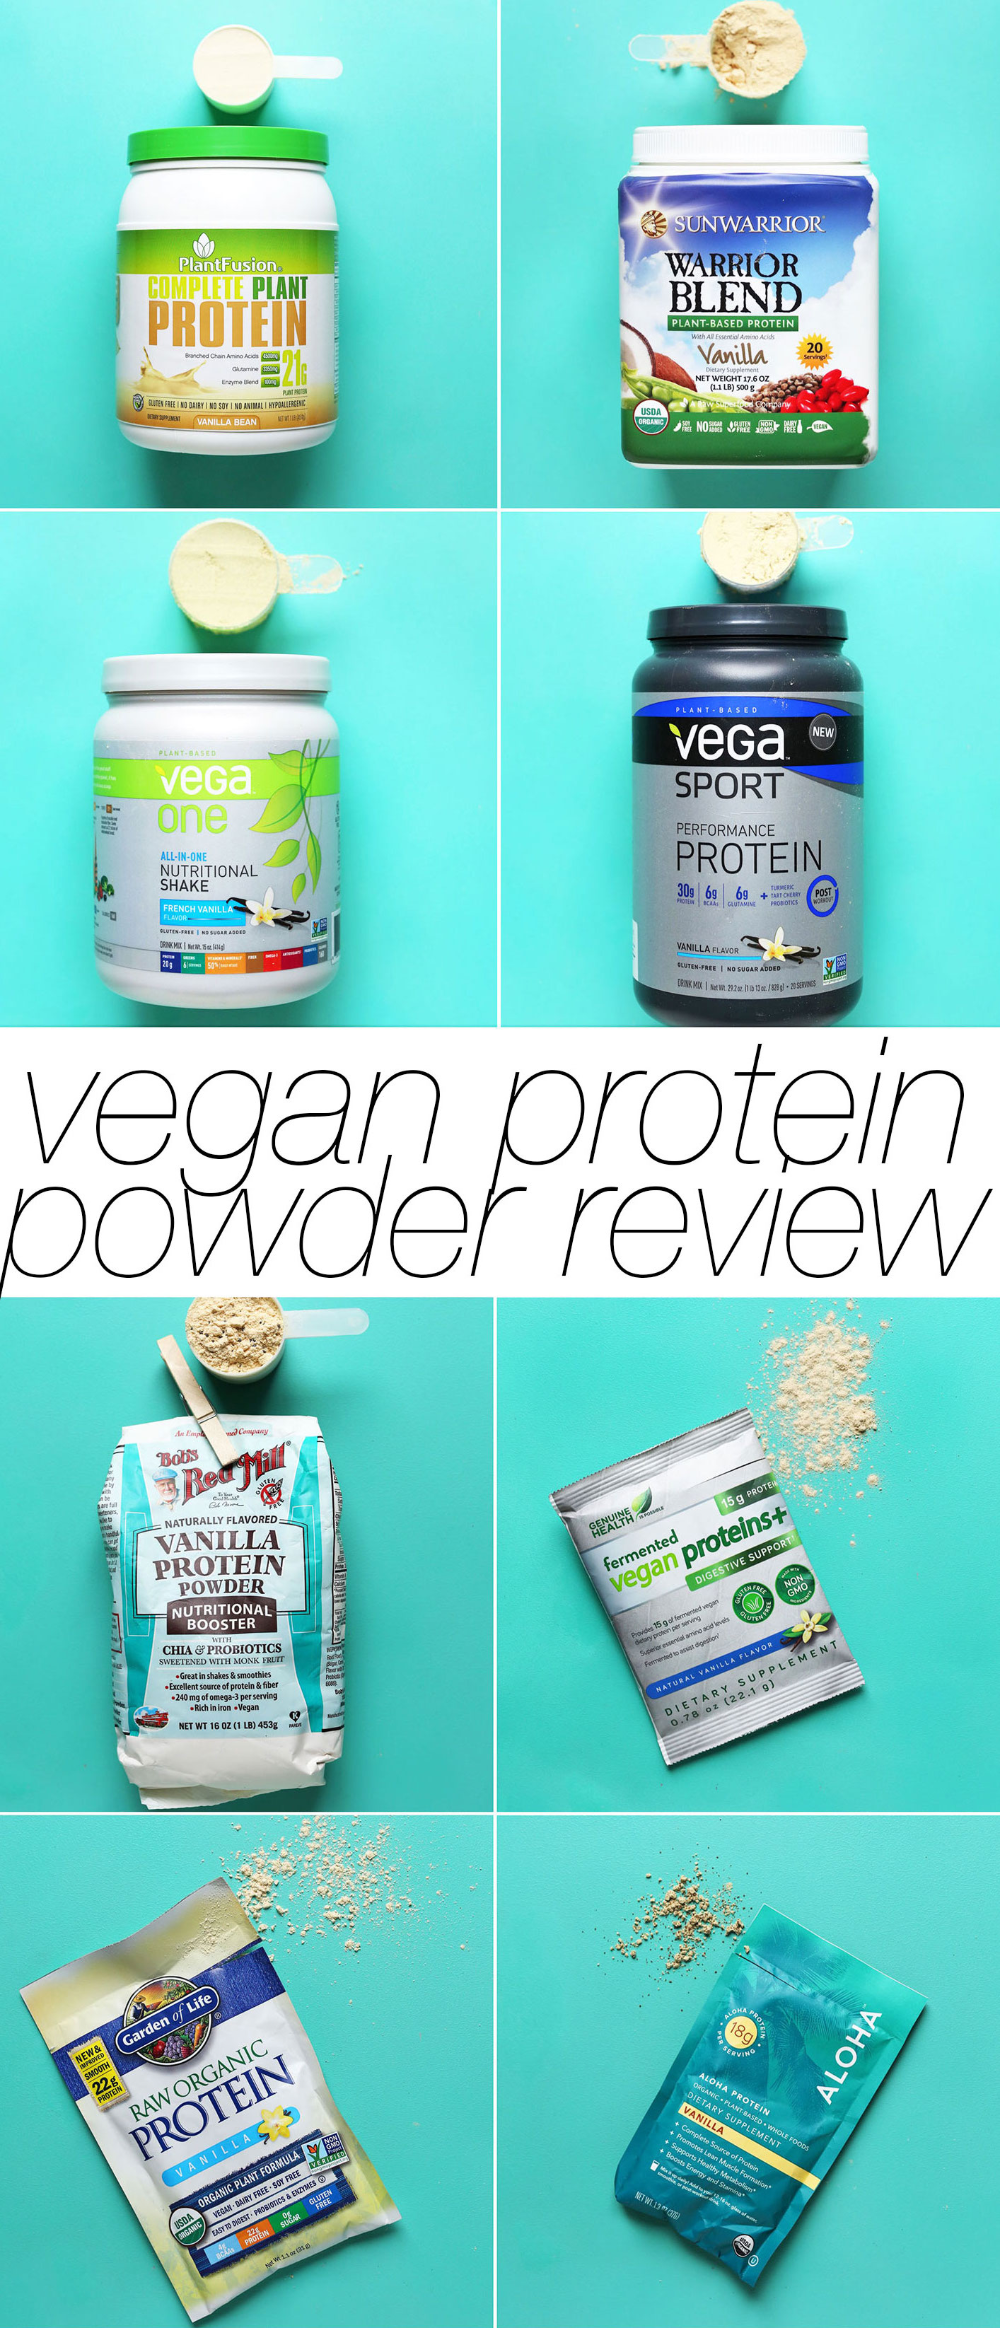 Vegan Protein Powder Review & Comparison| Minimalist Baker Reviews